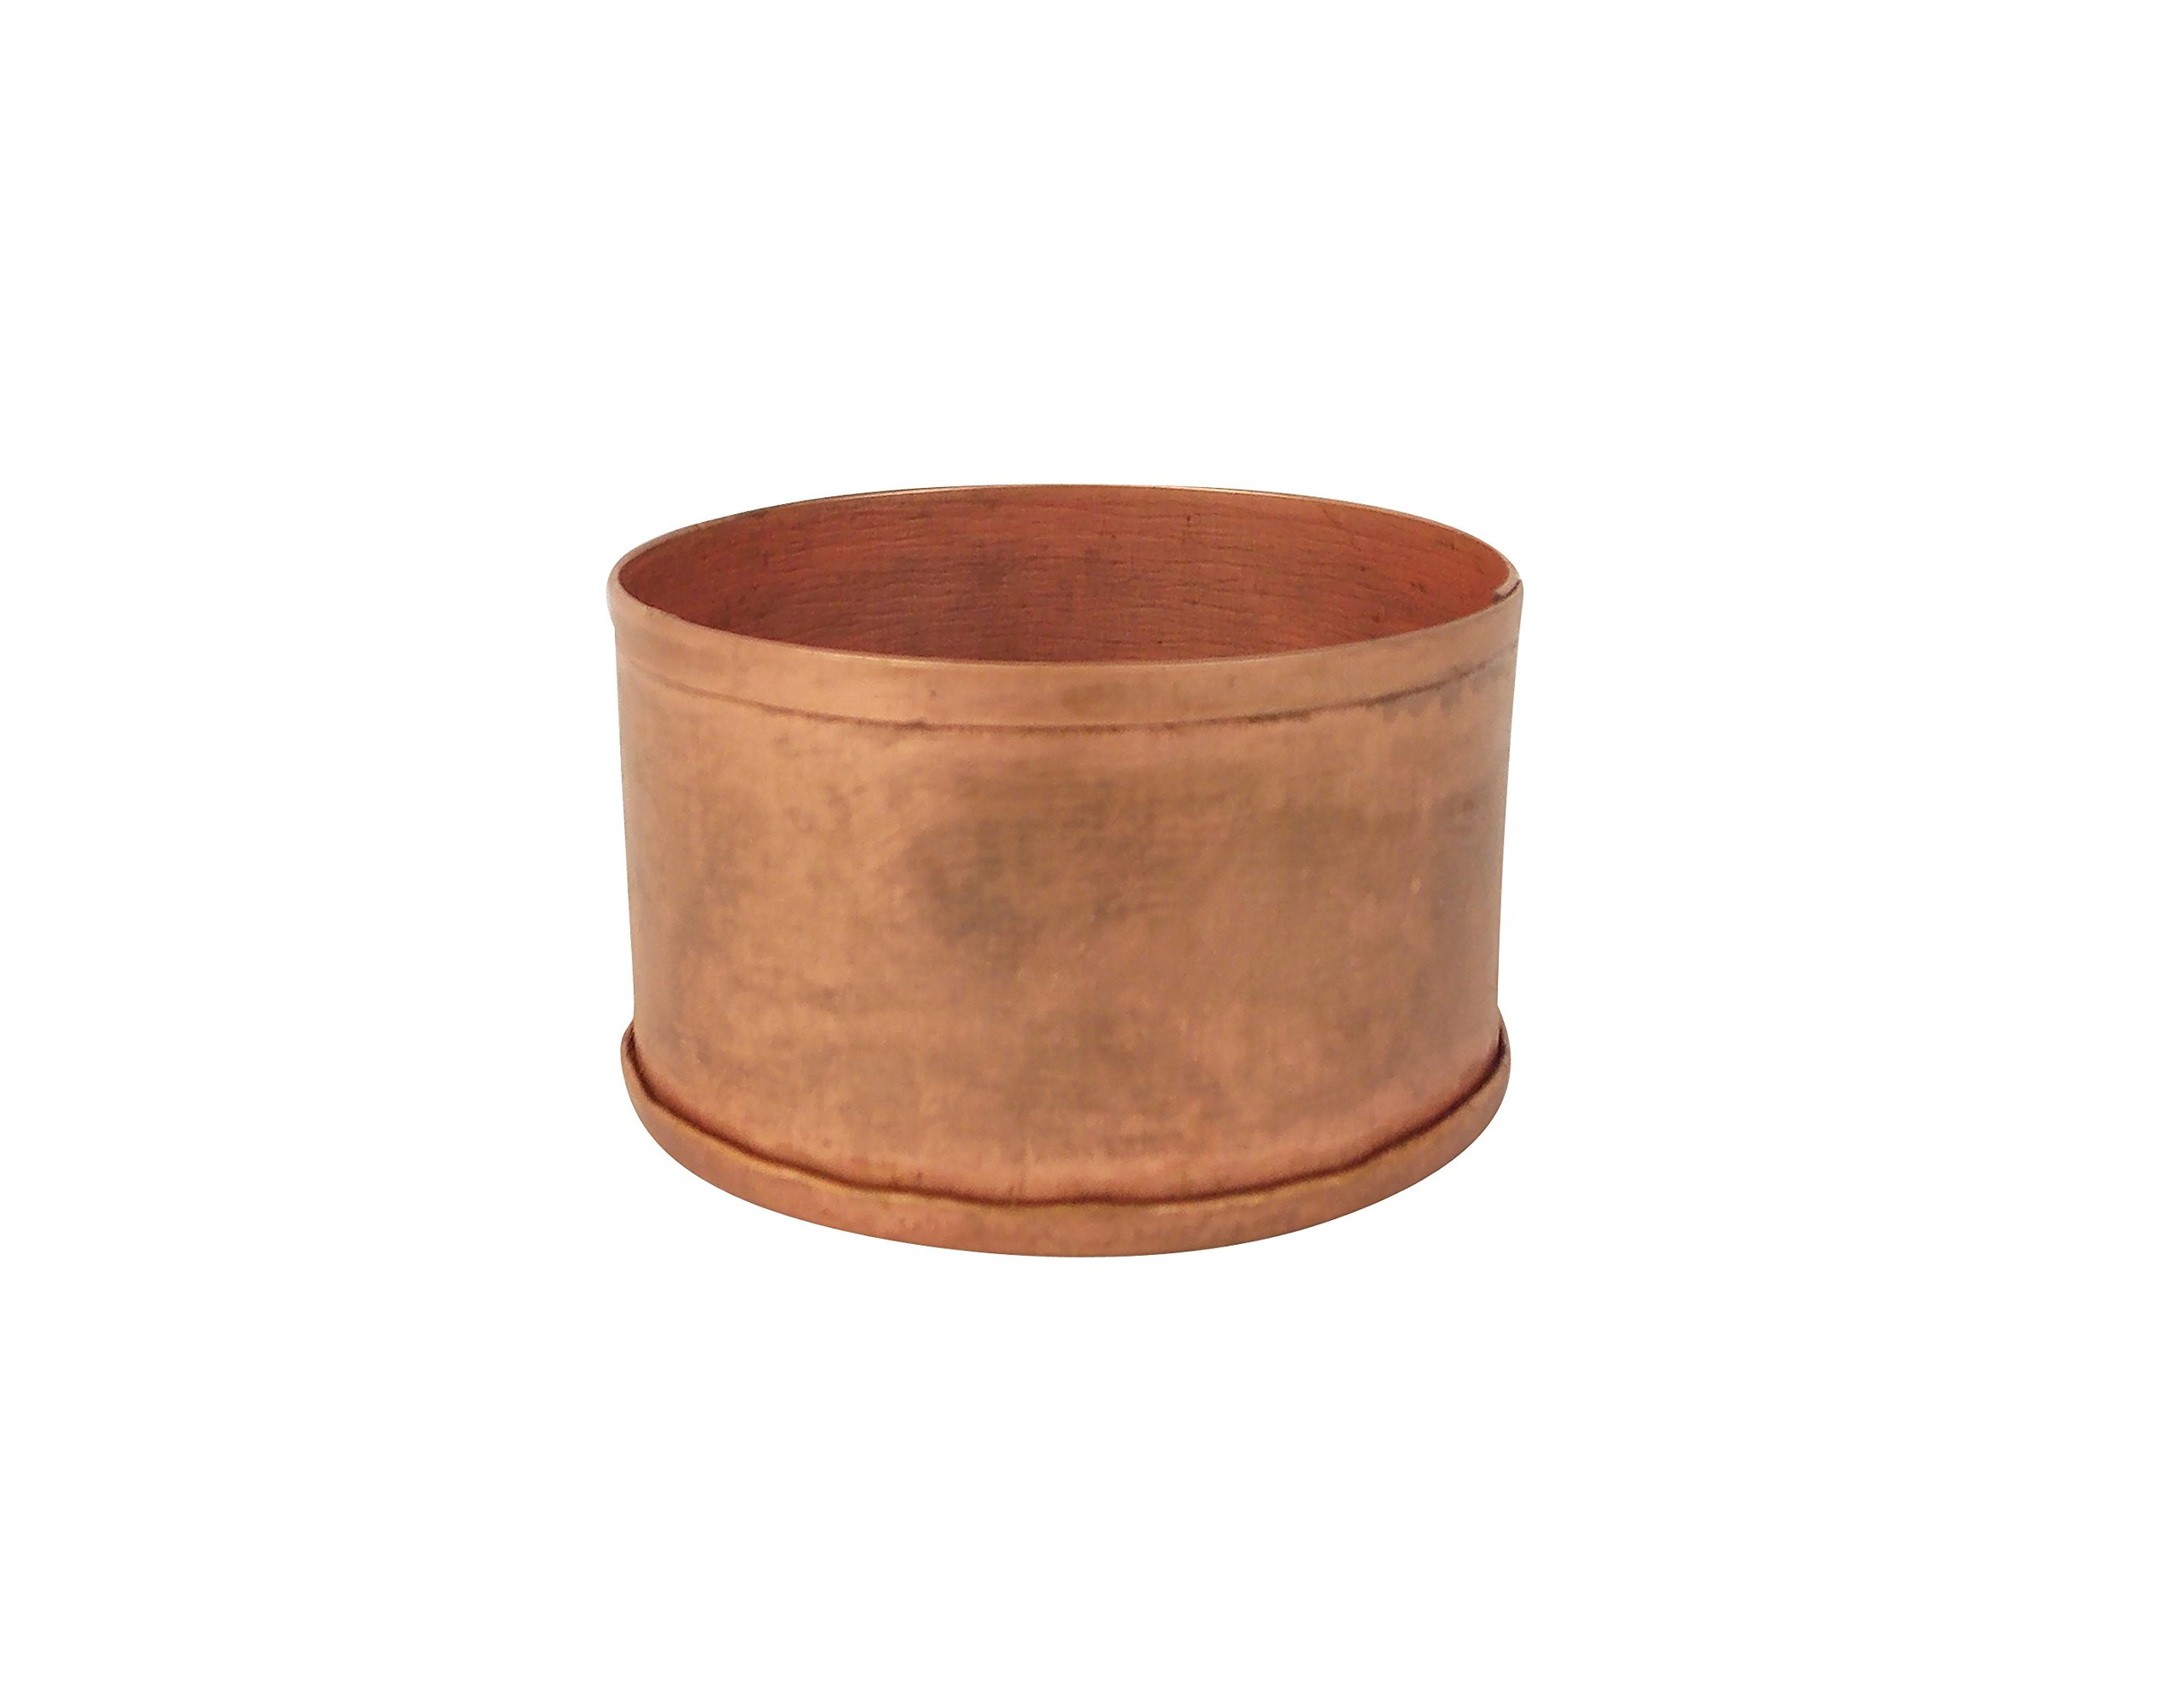 Craft Outlet 2'' x 2'' x 1.25'' Copper Candle Holder (Set of 4), Small